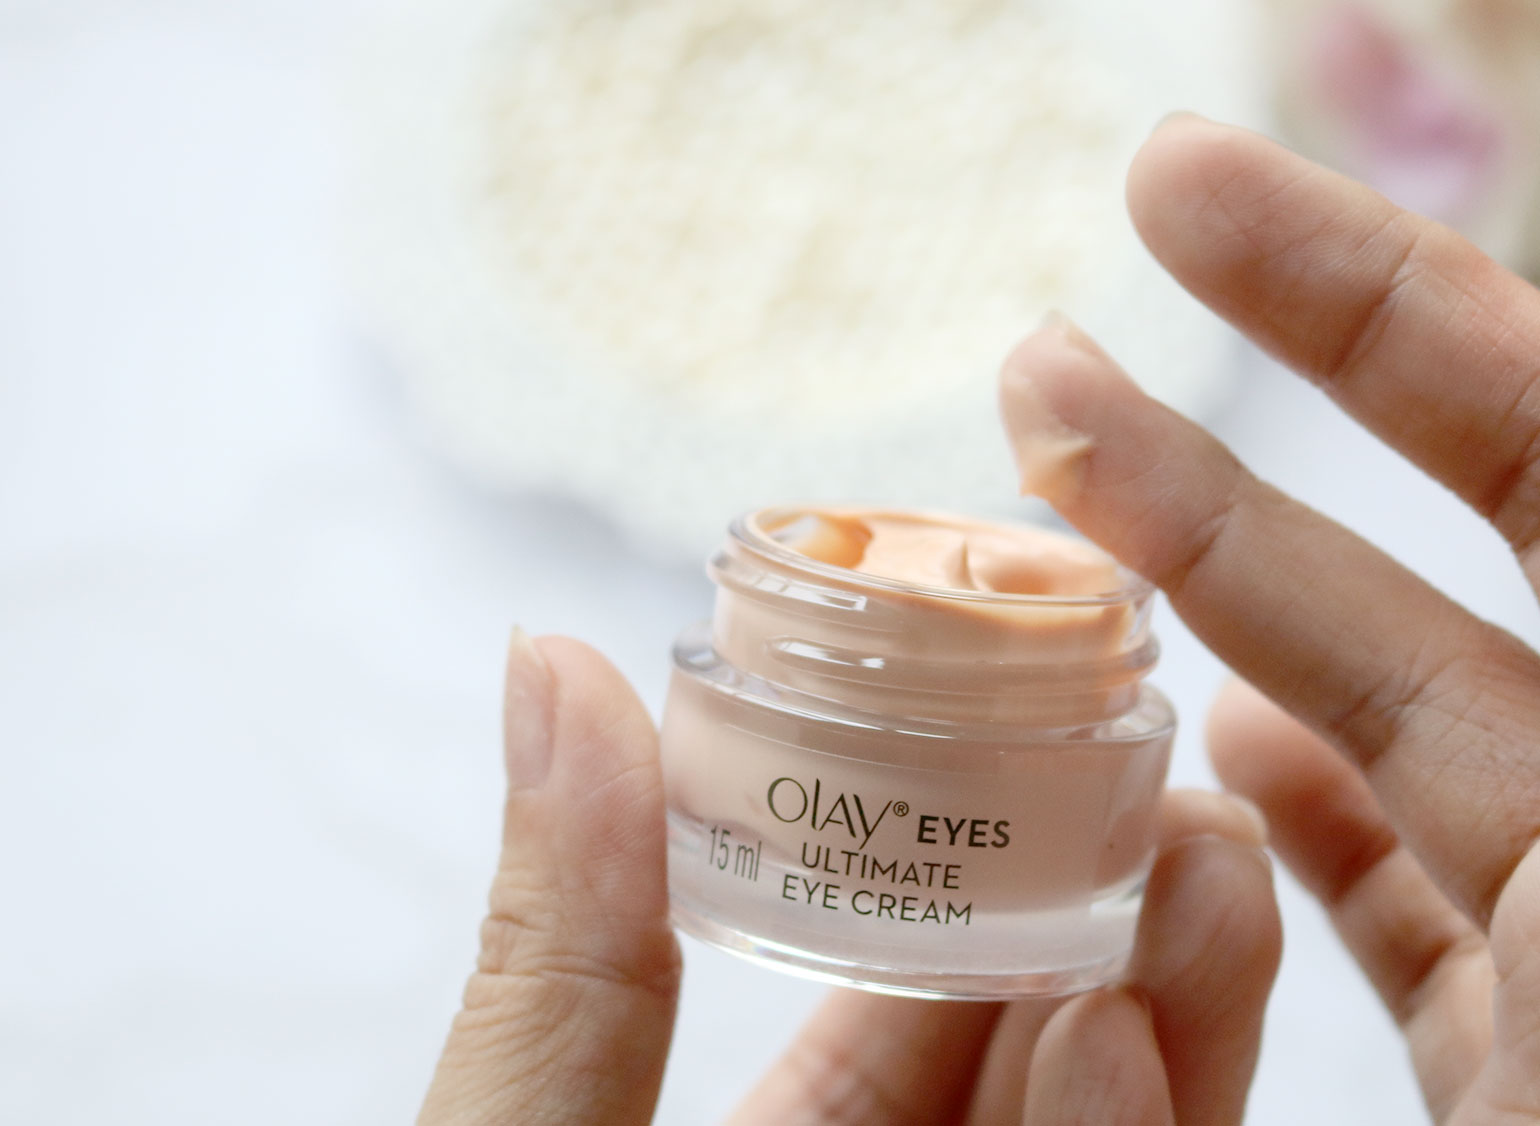 4 Olay Eyes Review Photos Before and After - She Sings Beauty by Gen-zel Habab